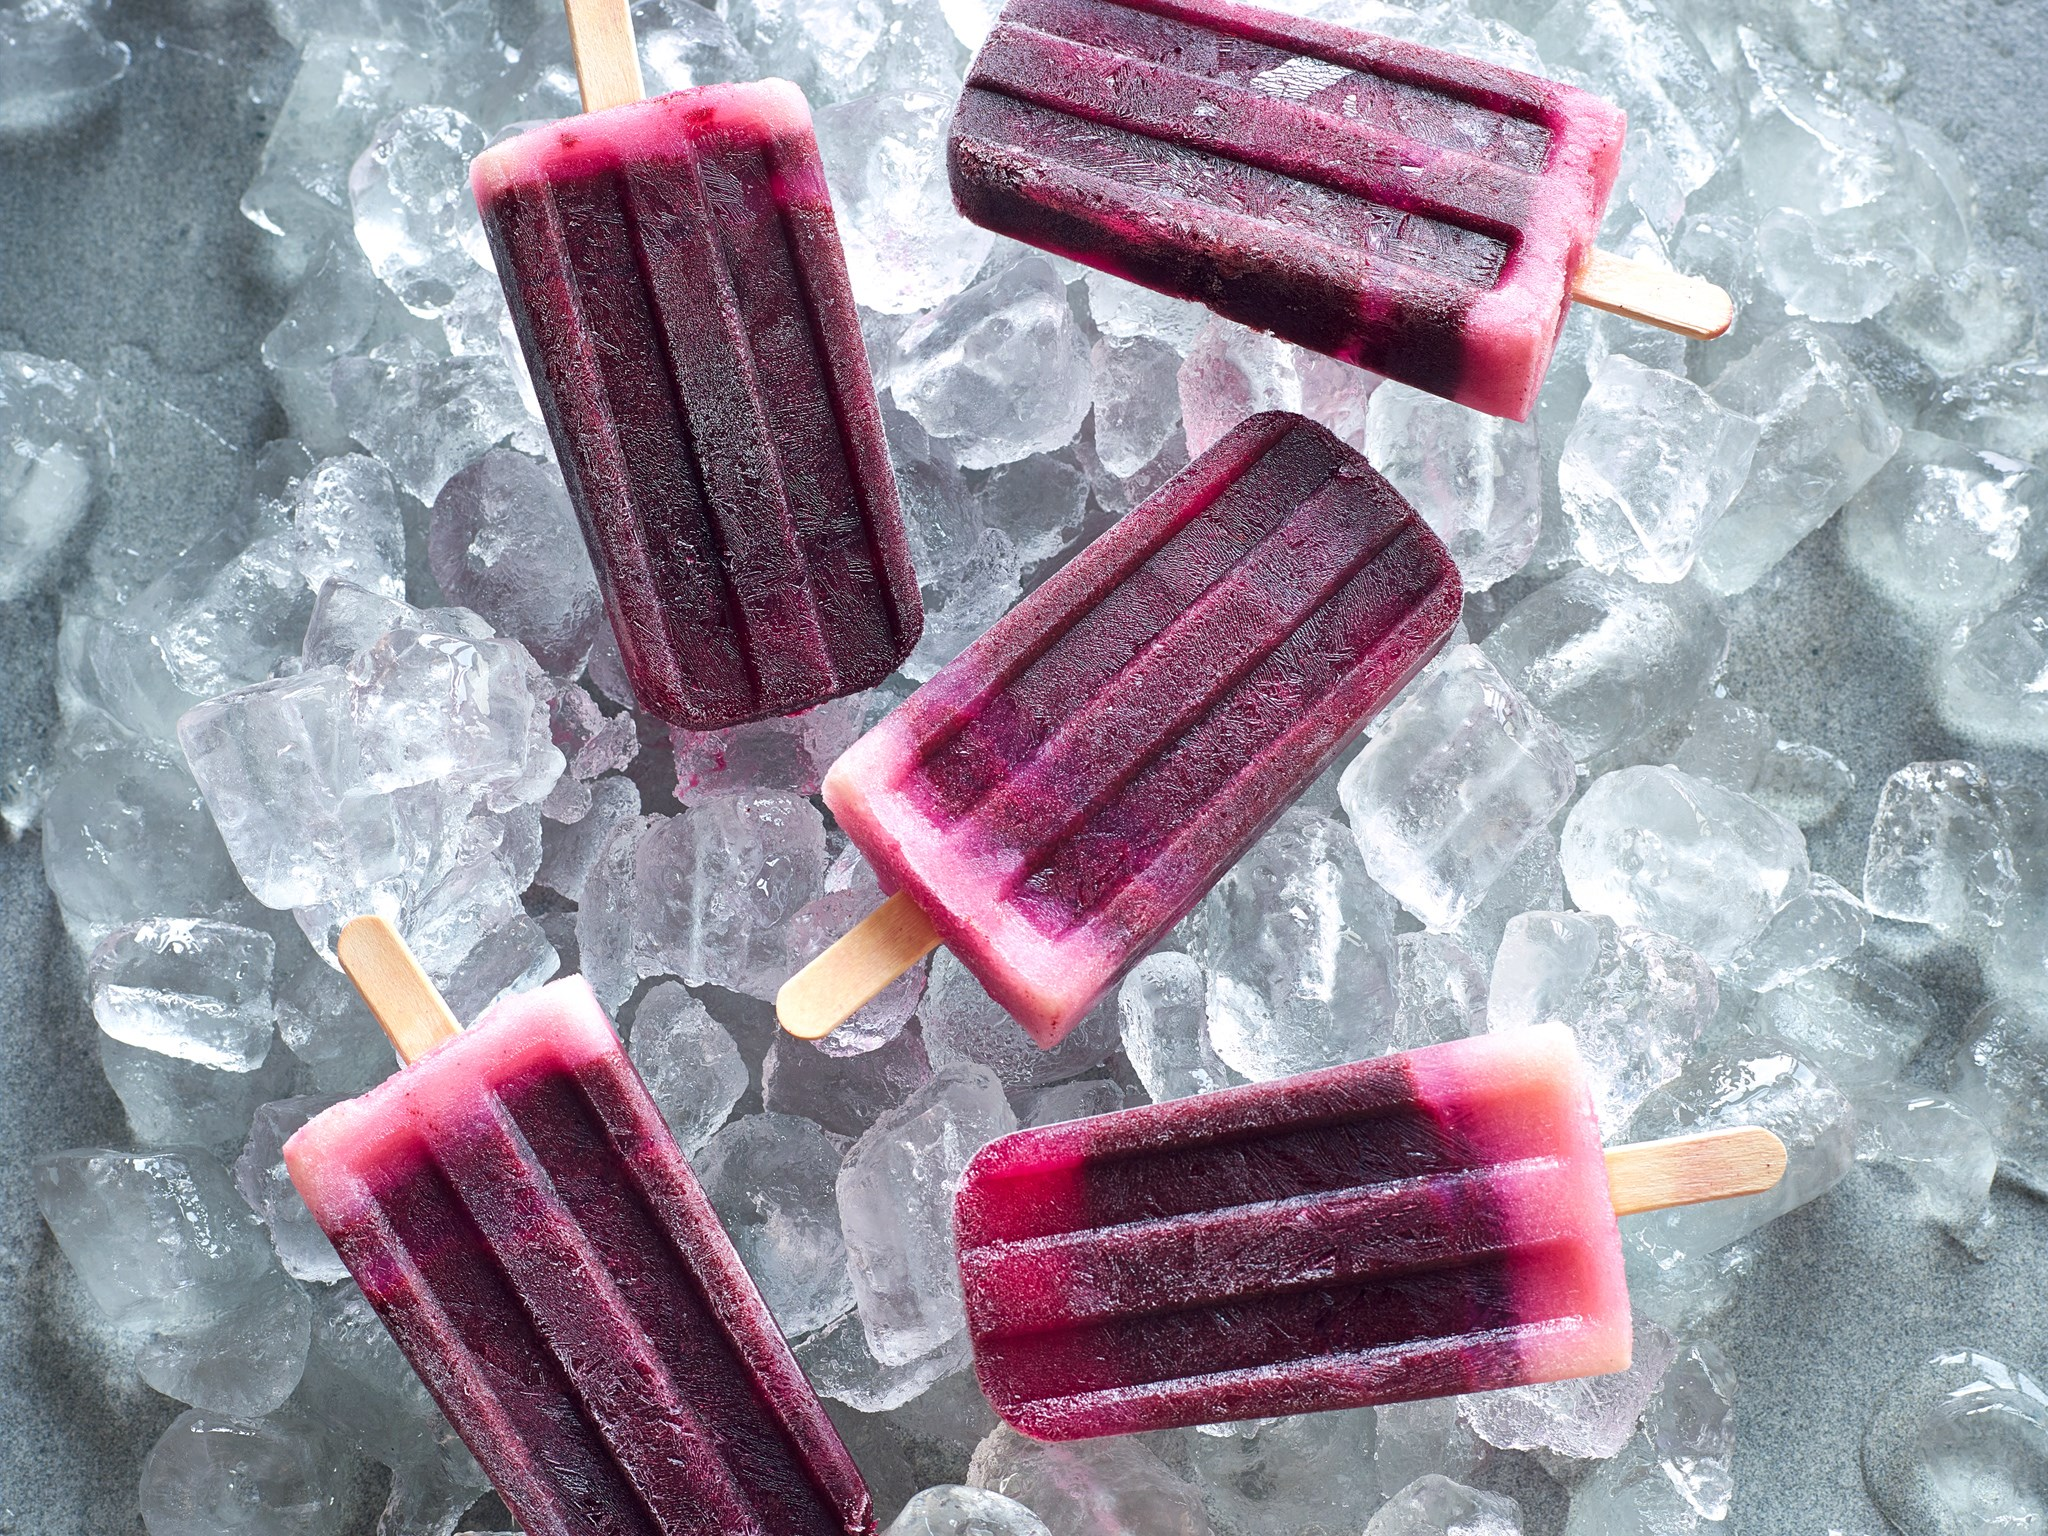 These [blueberry lemon ice blocks](http://www.foodtolove.co.nz/recipes/blueberry-lemon-ice-blocks-21695) not only look and taste amazing but are also really good for you; the vitamin C and antioxidants from the blueberries and lemon juice will help keep your immune system charging so you can enjoy your summer adventures.